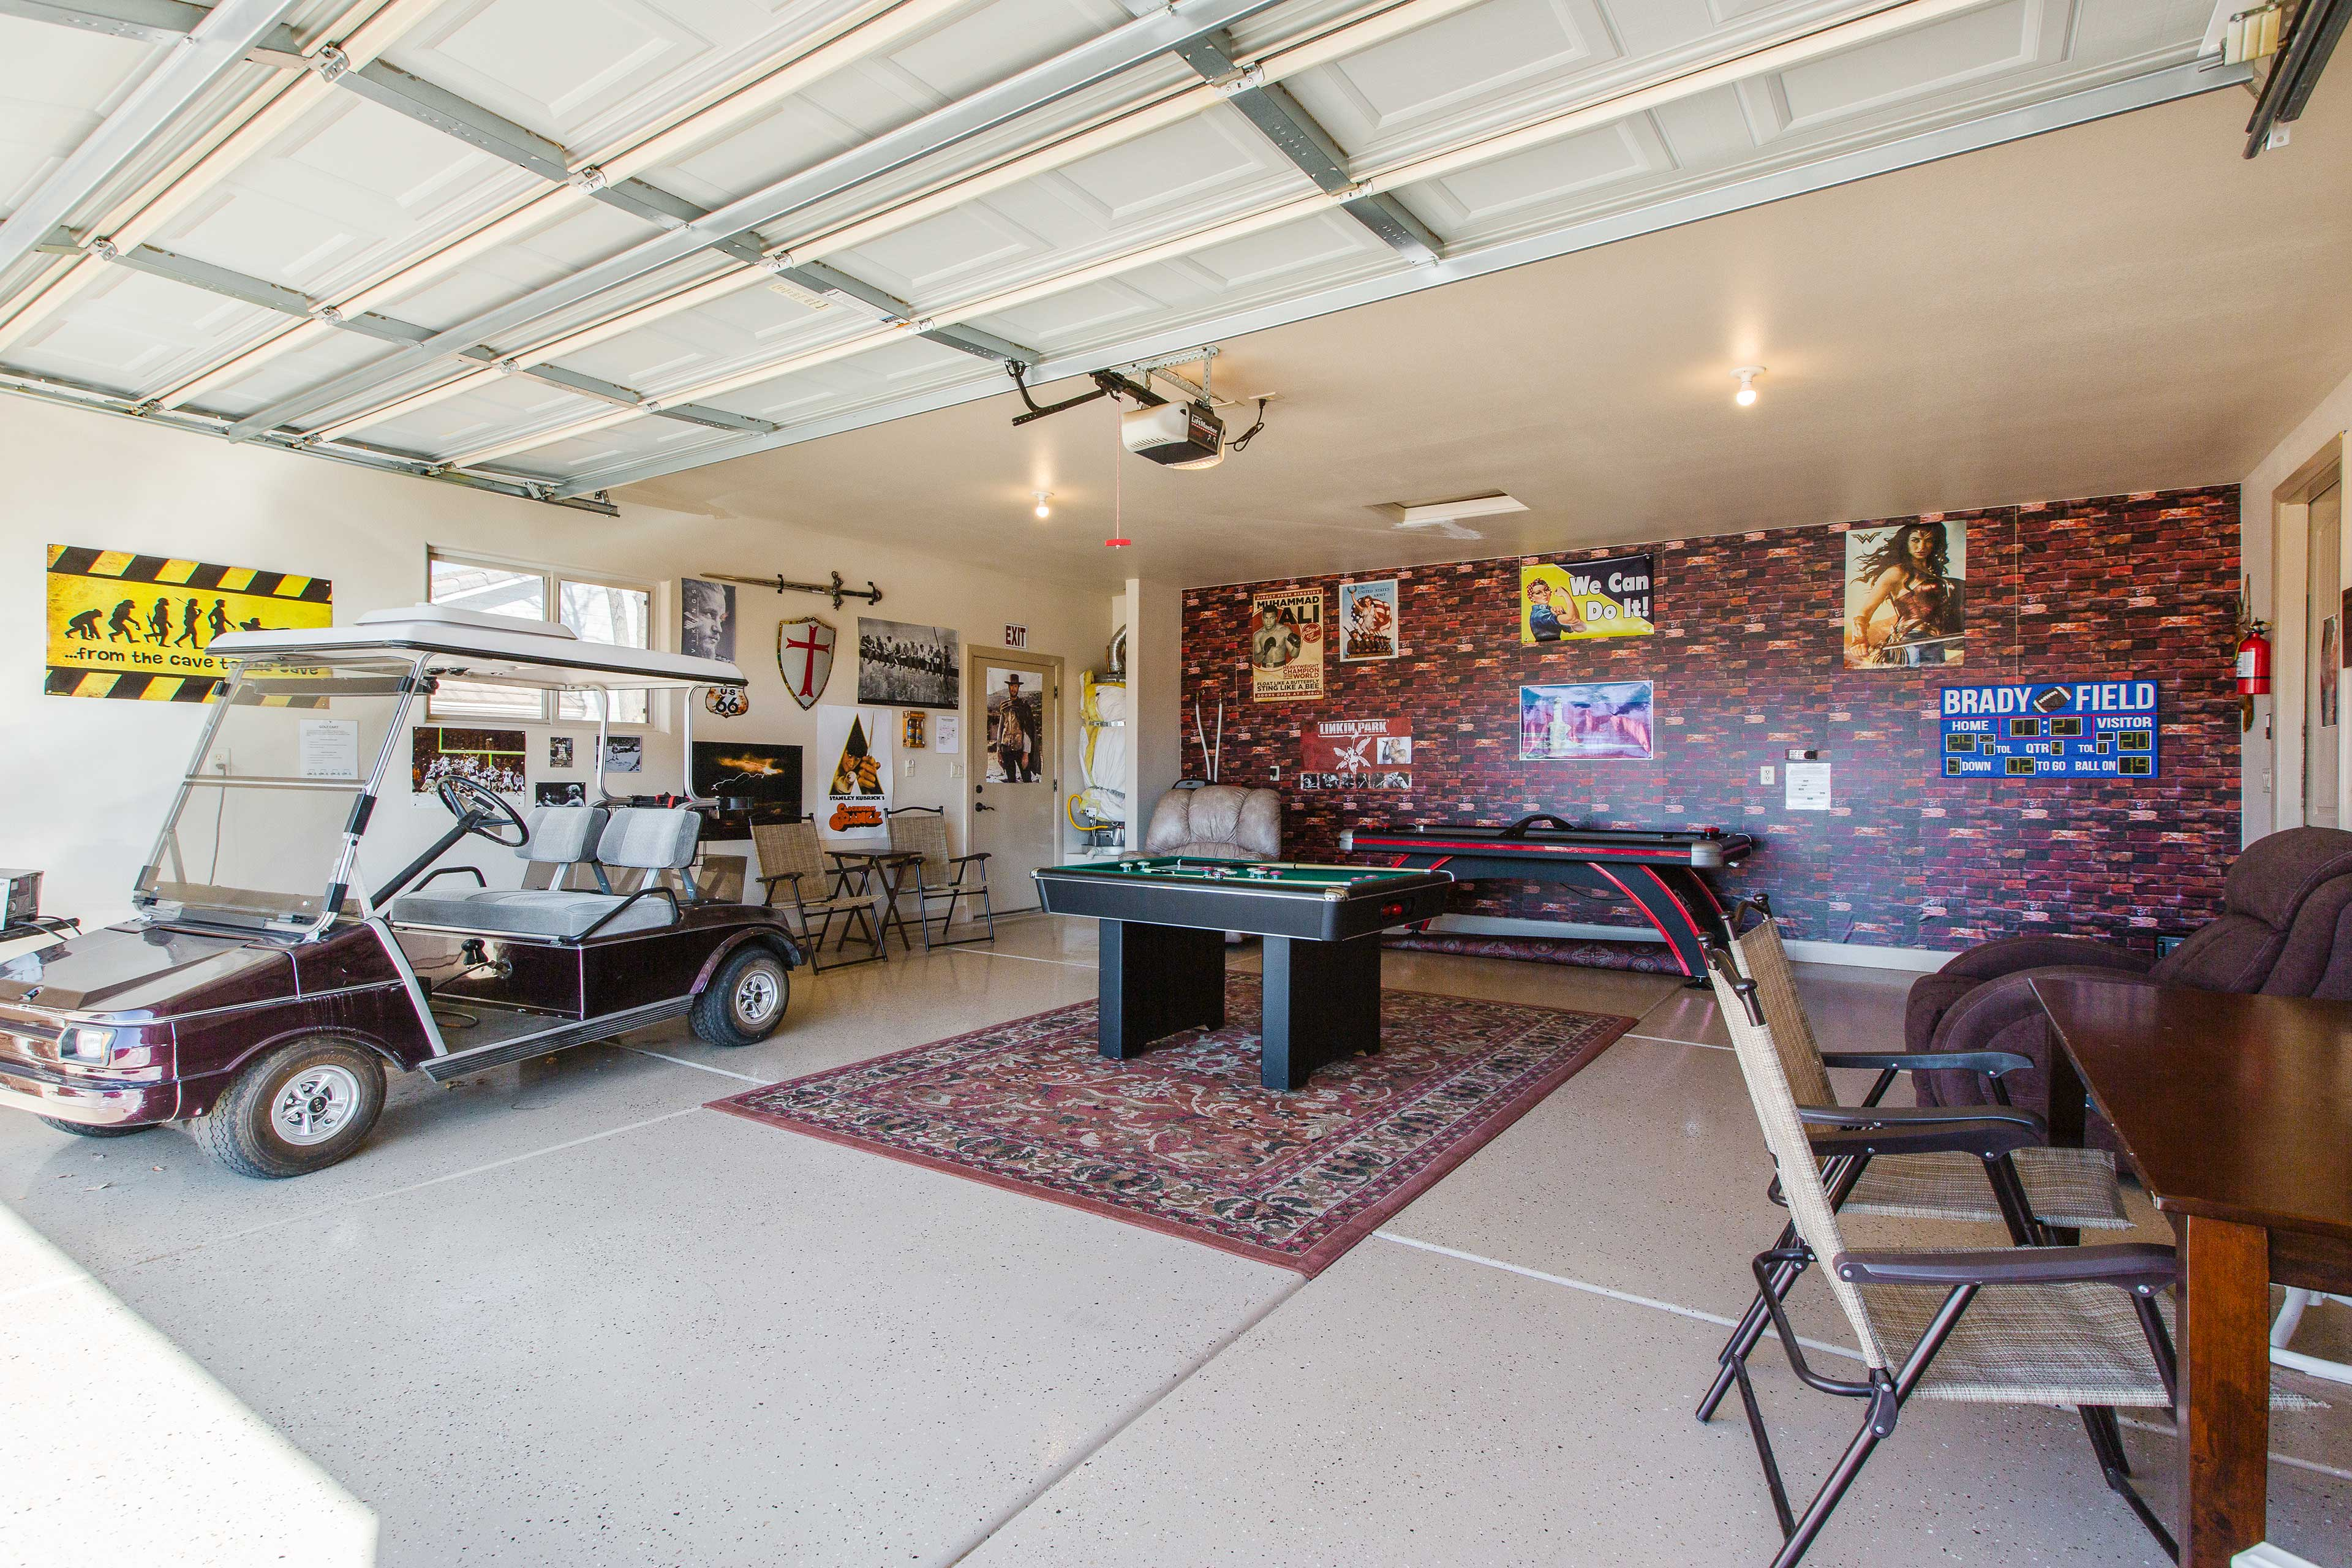 The garage includes a bumper pool table and air hockey table!